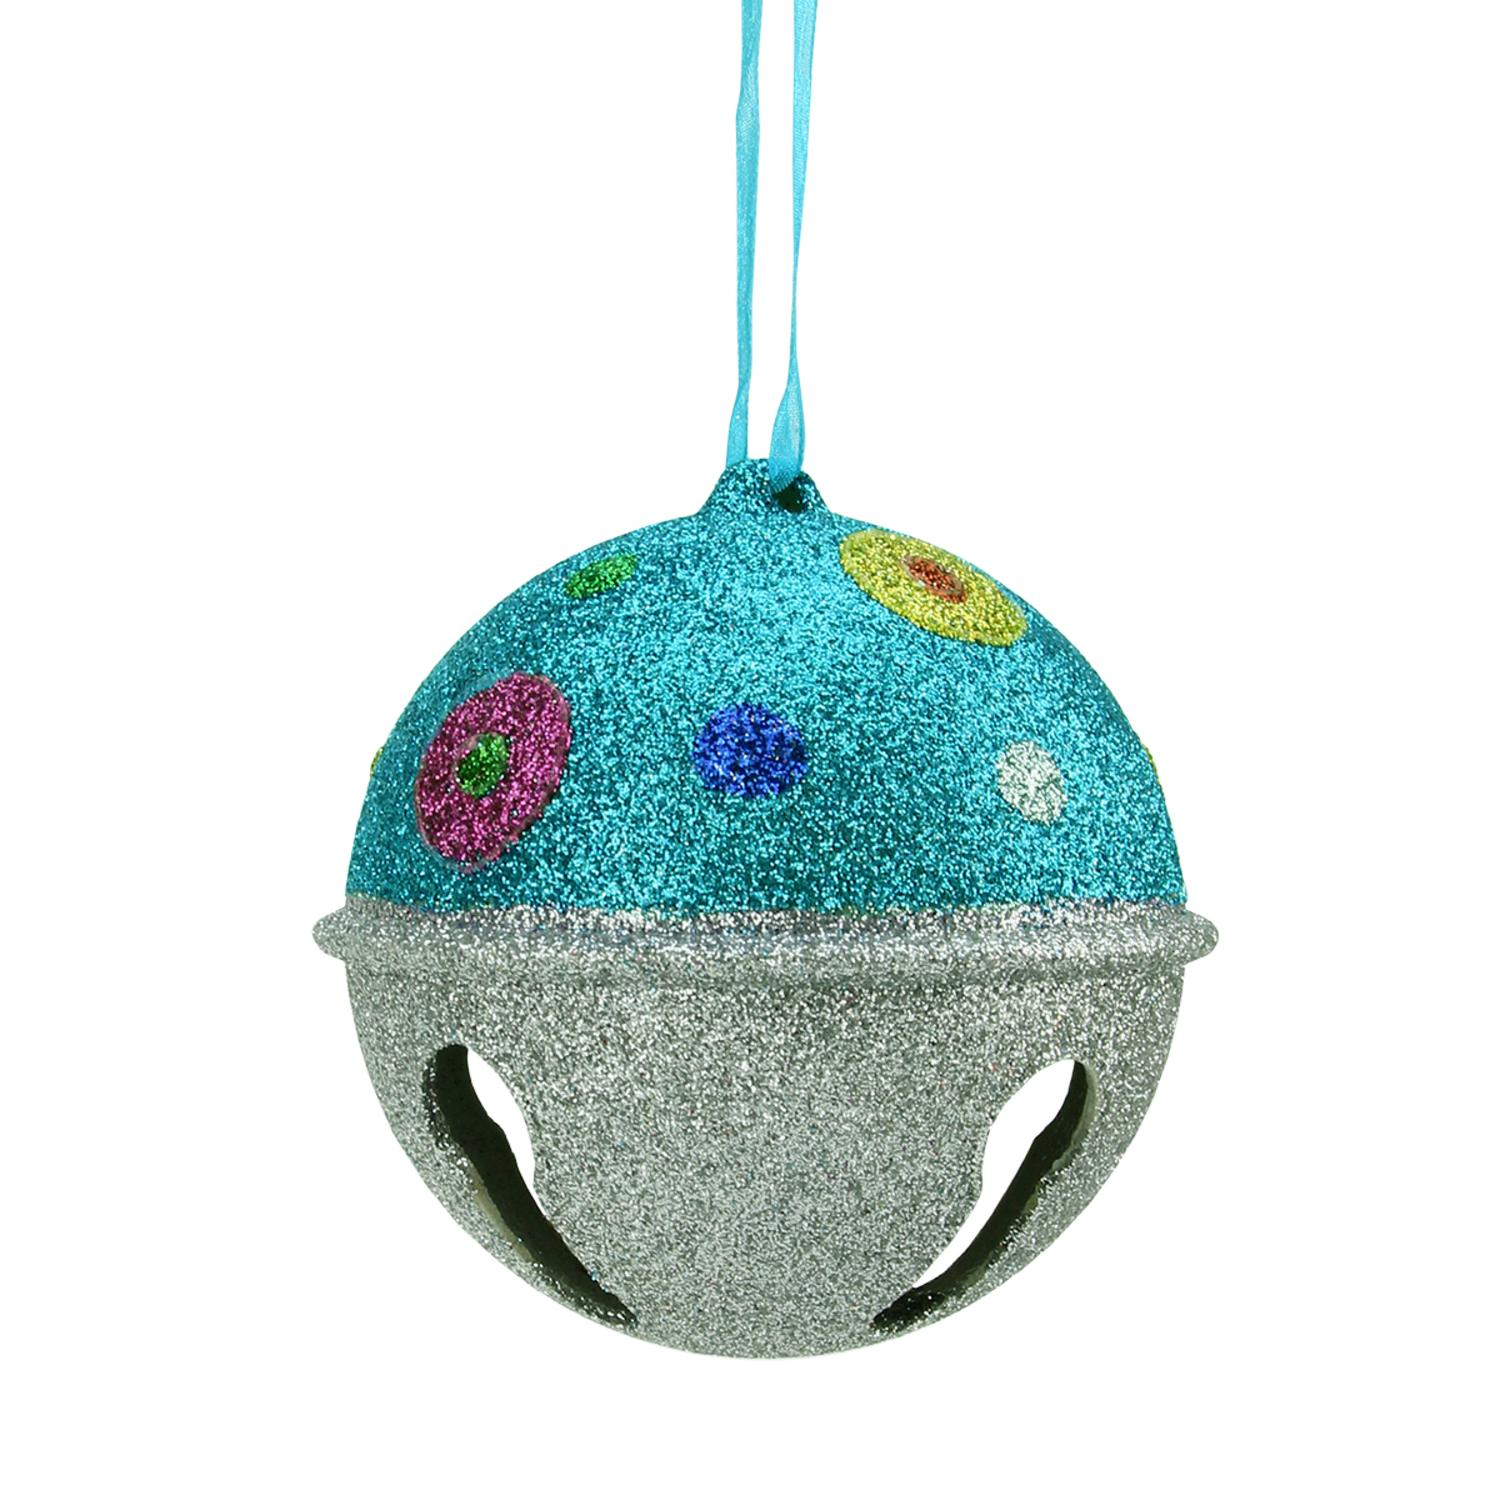 Polka dot christmas ornaments - Candy Fantasy Blue And Silver Glitter Bell With